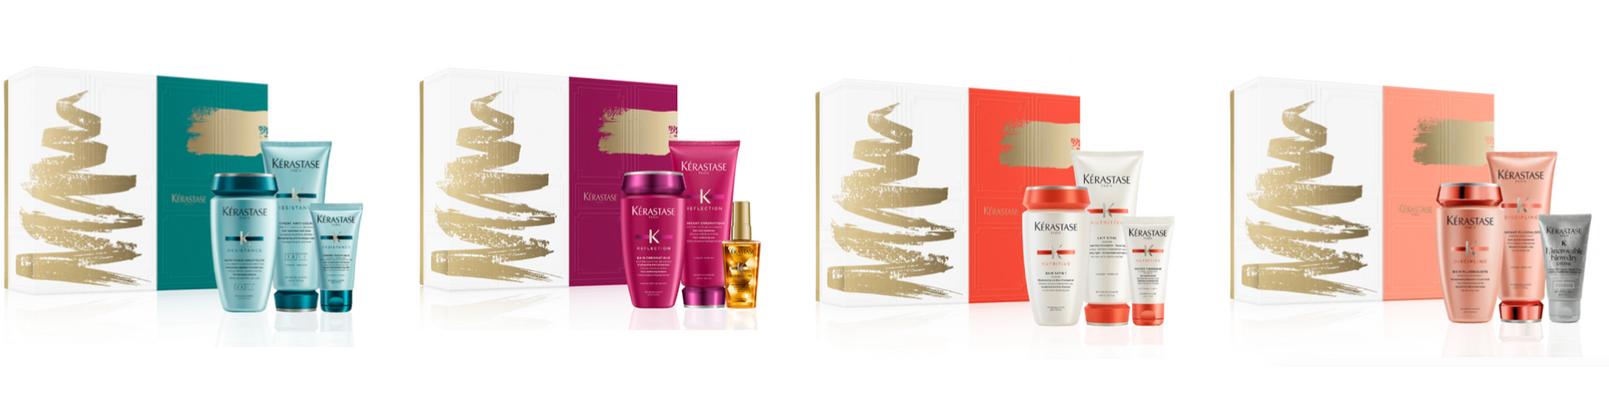 kerastase holiday packs.png